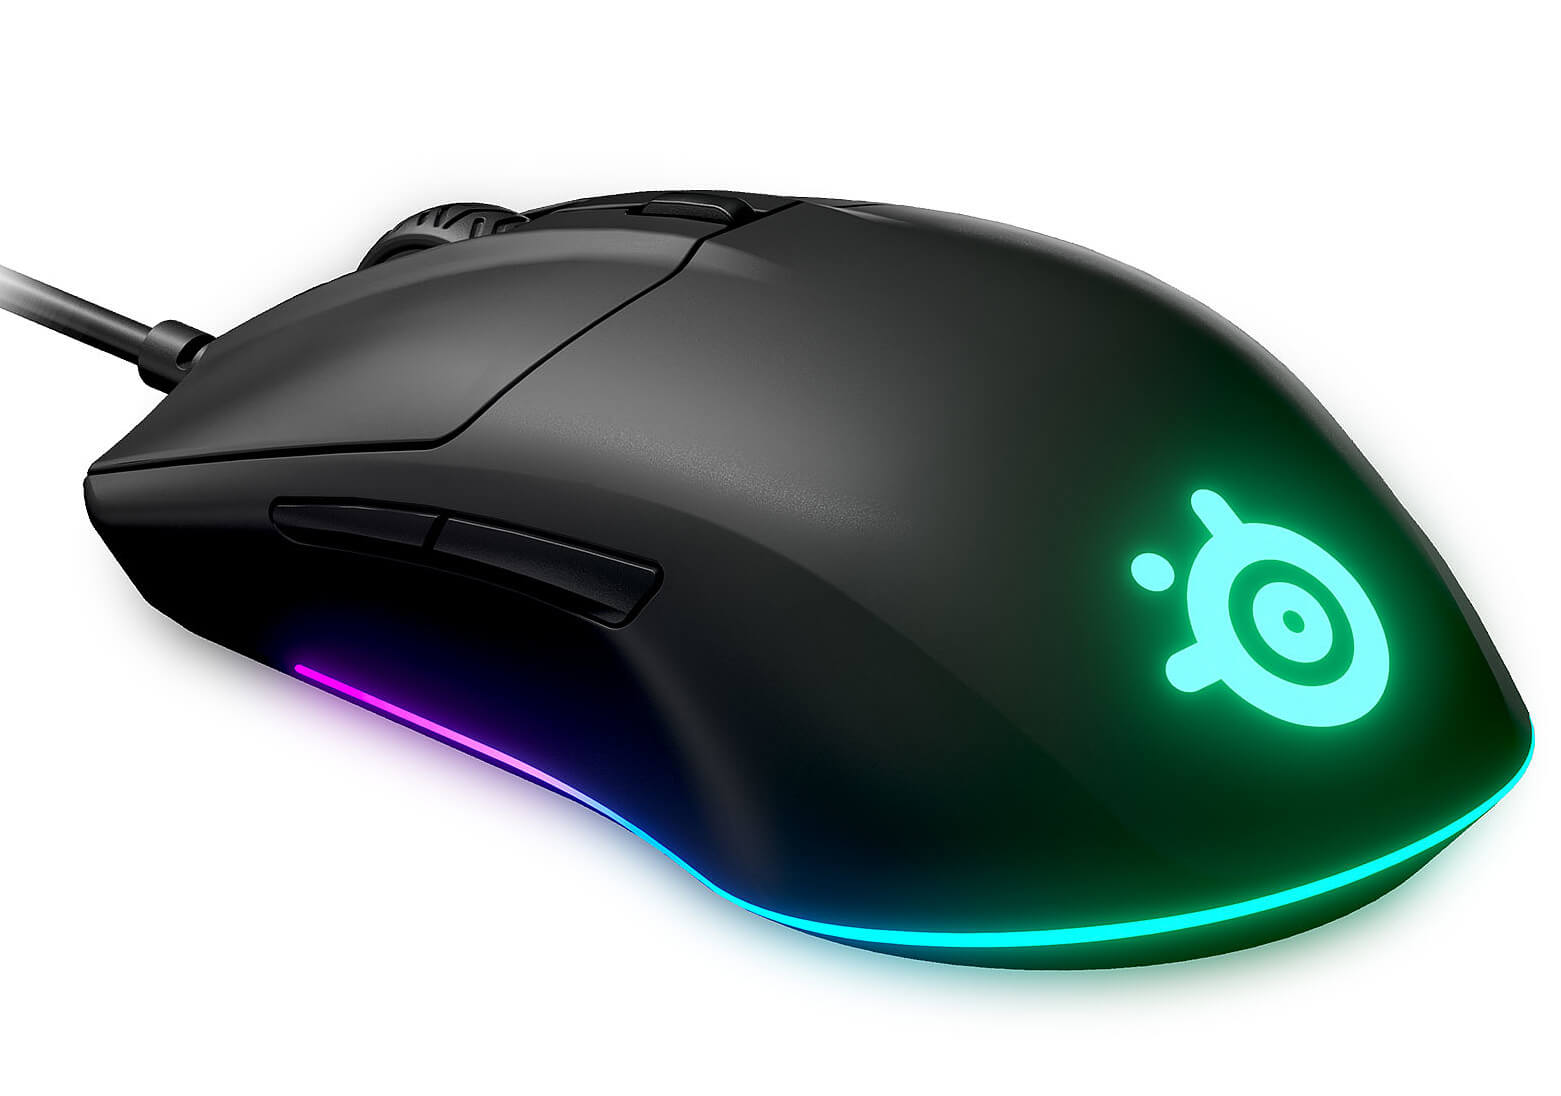 Chuột SteelSeries Rival 3 Black